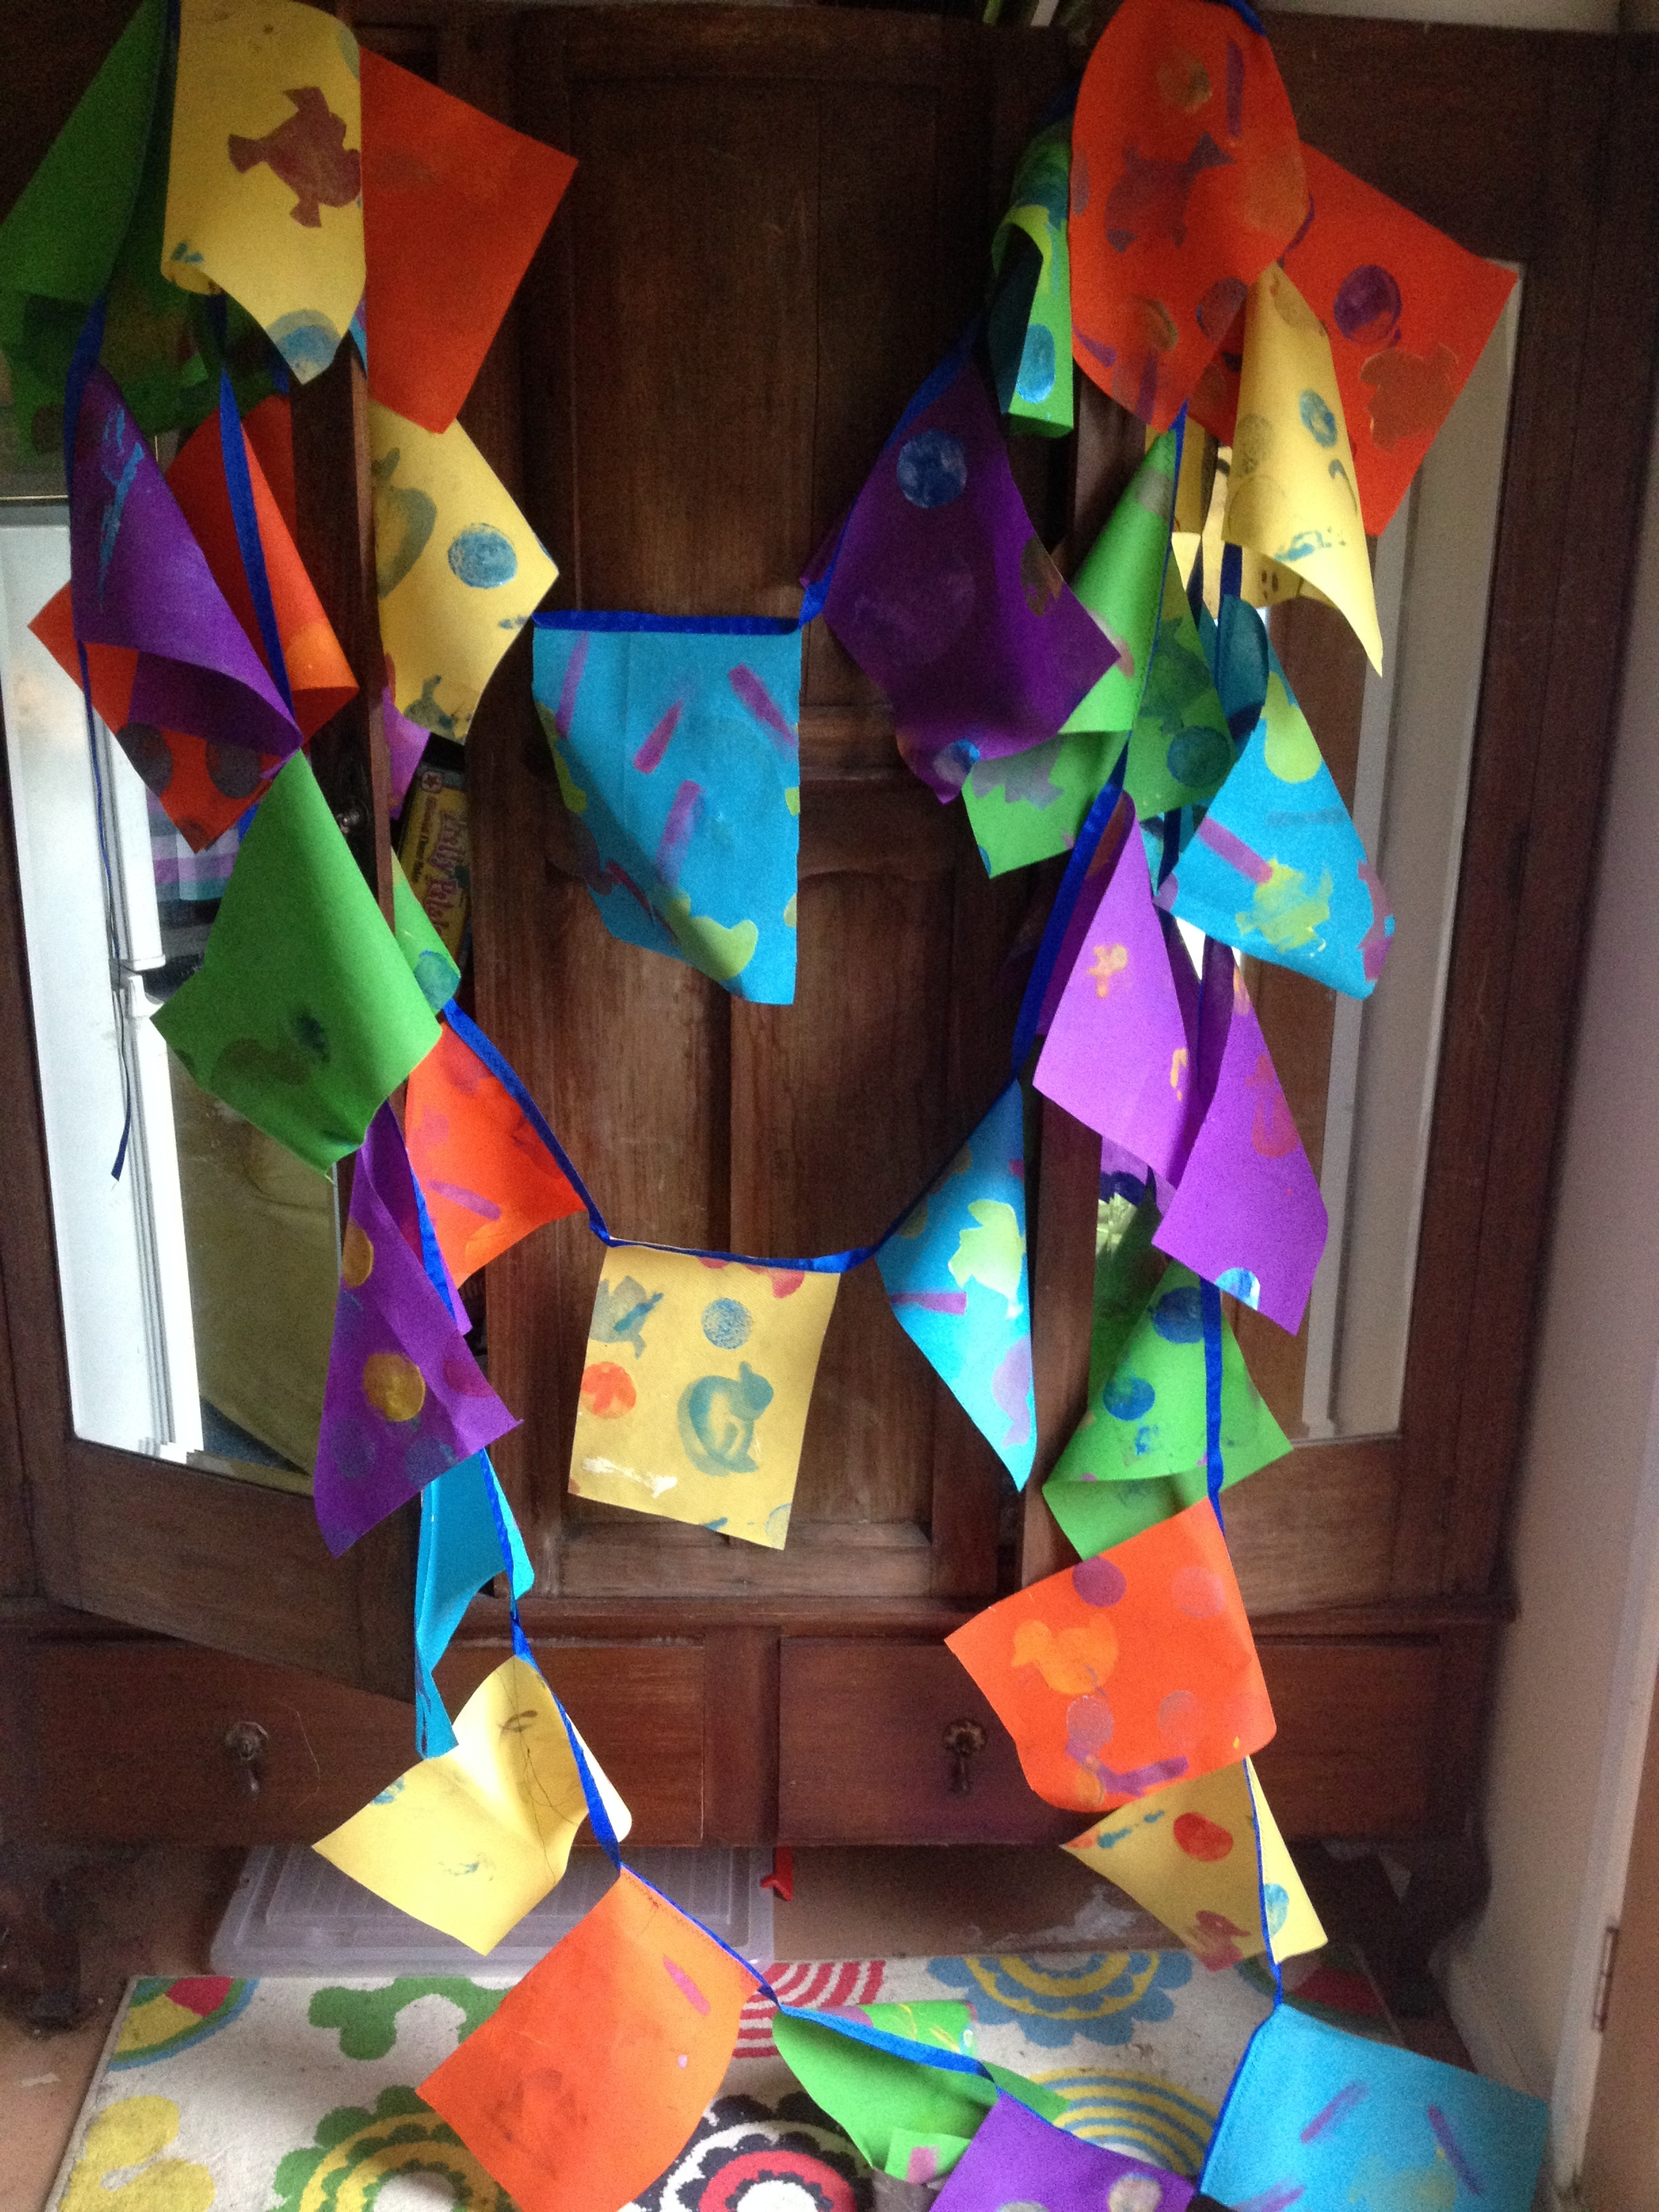 The festival bunting. We've made 50 metres of this!